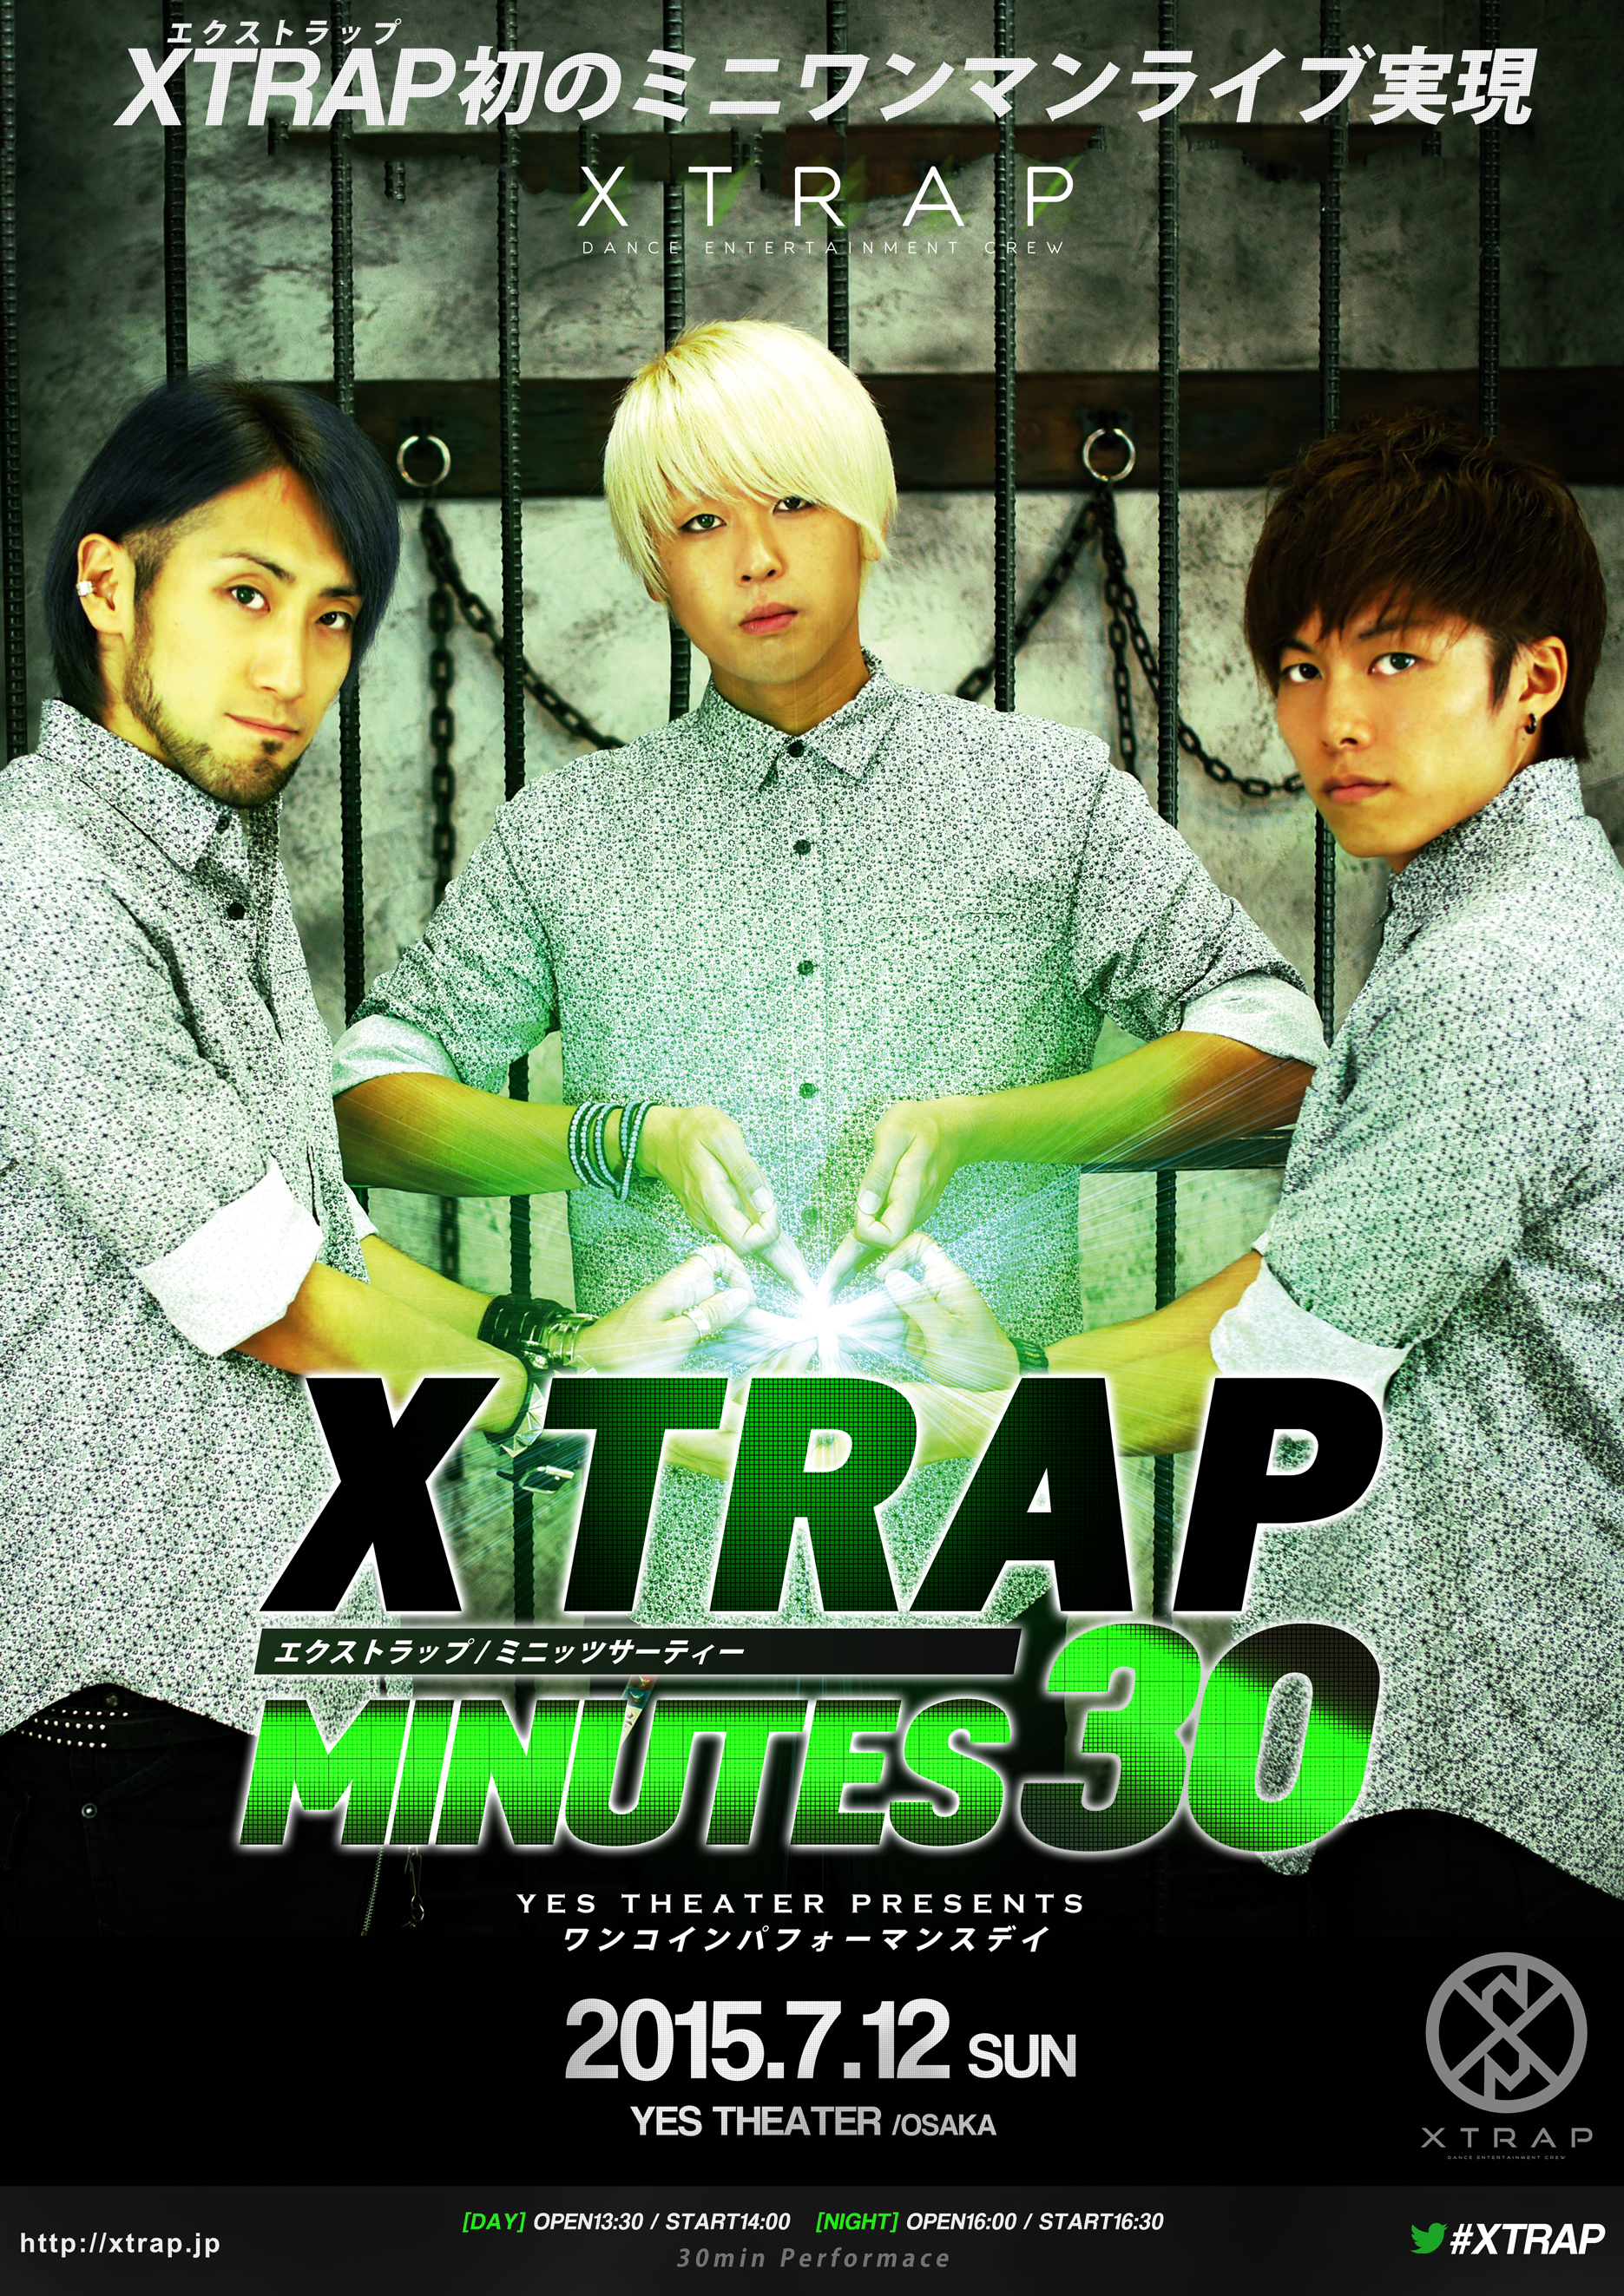 2015.7.12 XTRAP MINUTES 30 at YES THEATER OSAKA(終了)